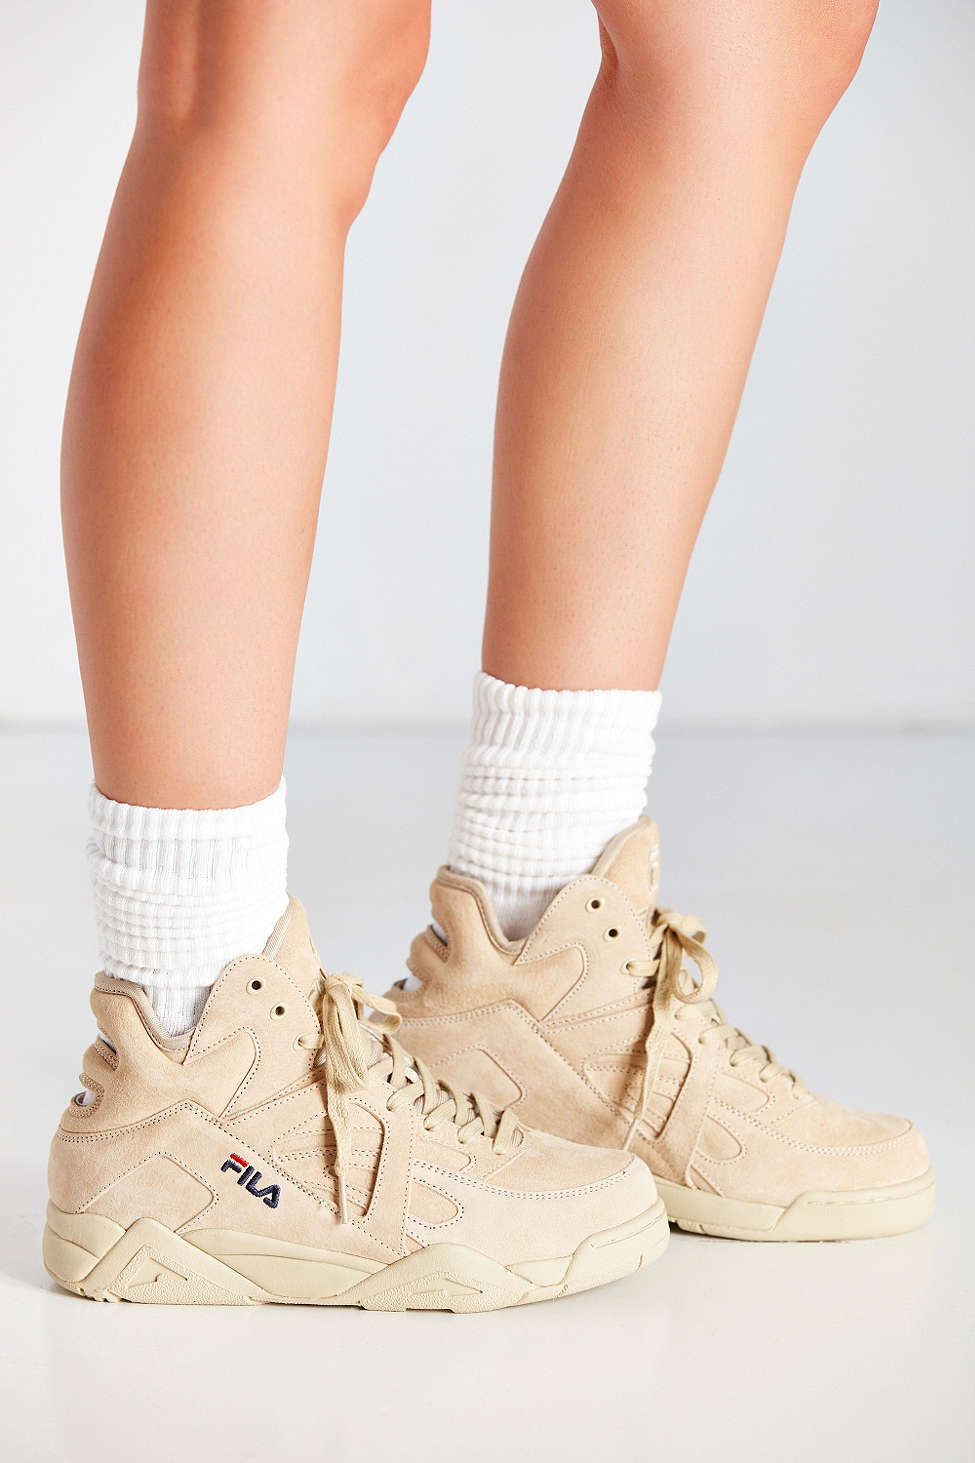 Urban Outfitters x FILA Cage 'Cream